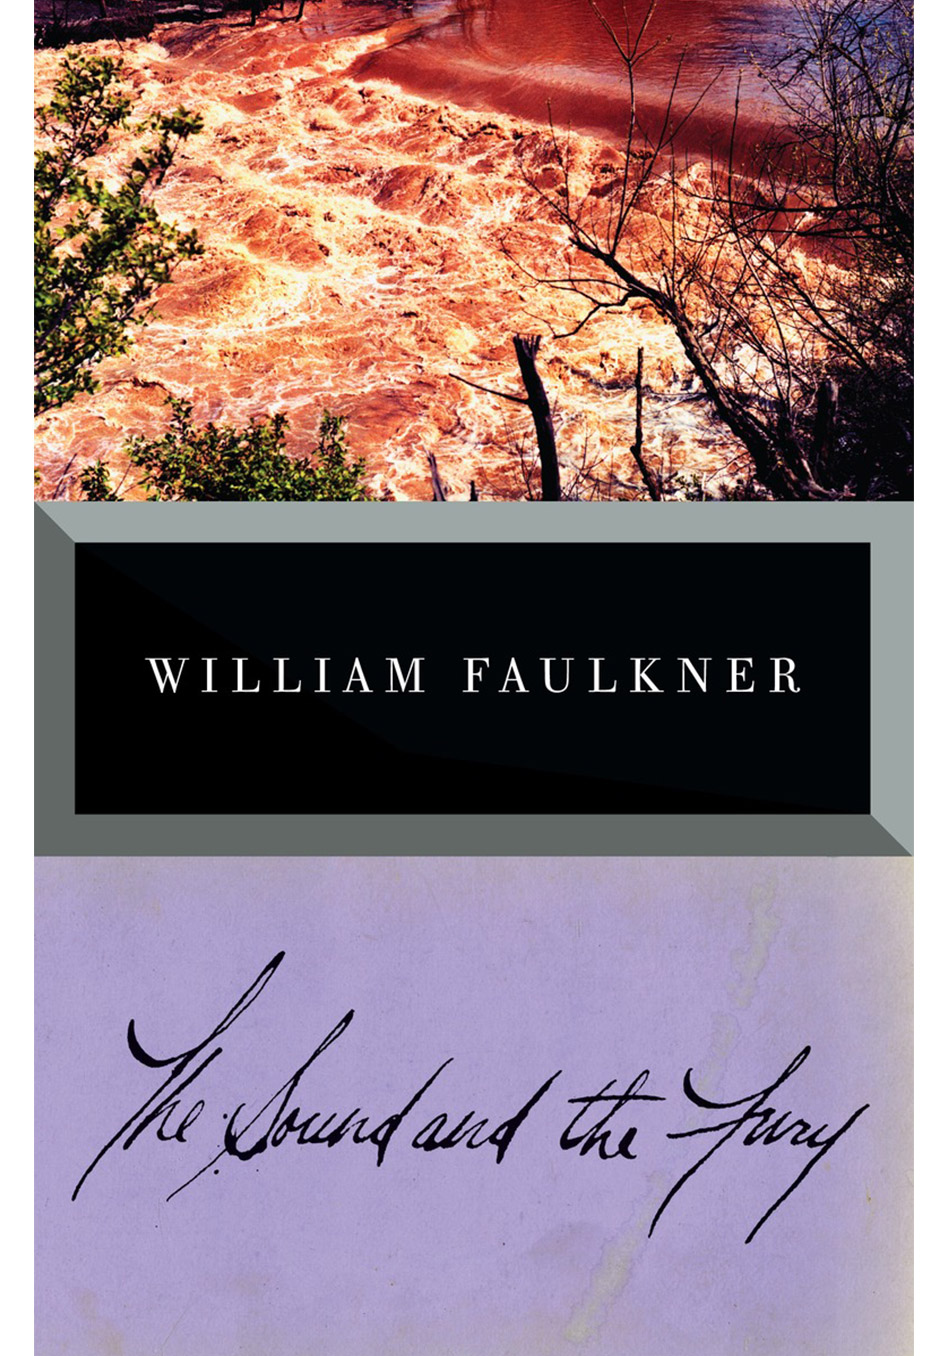 "a familys pride in the sound and the fury by william faulkner The sound and the fury, the first major novel by william faulkner, published in 1929 life ""is a tale told by an idiot, full of sound and fury, signifying nothing."